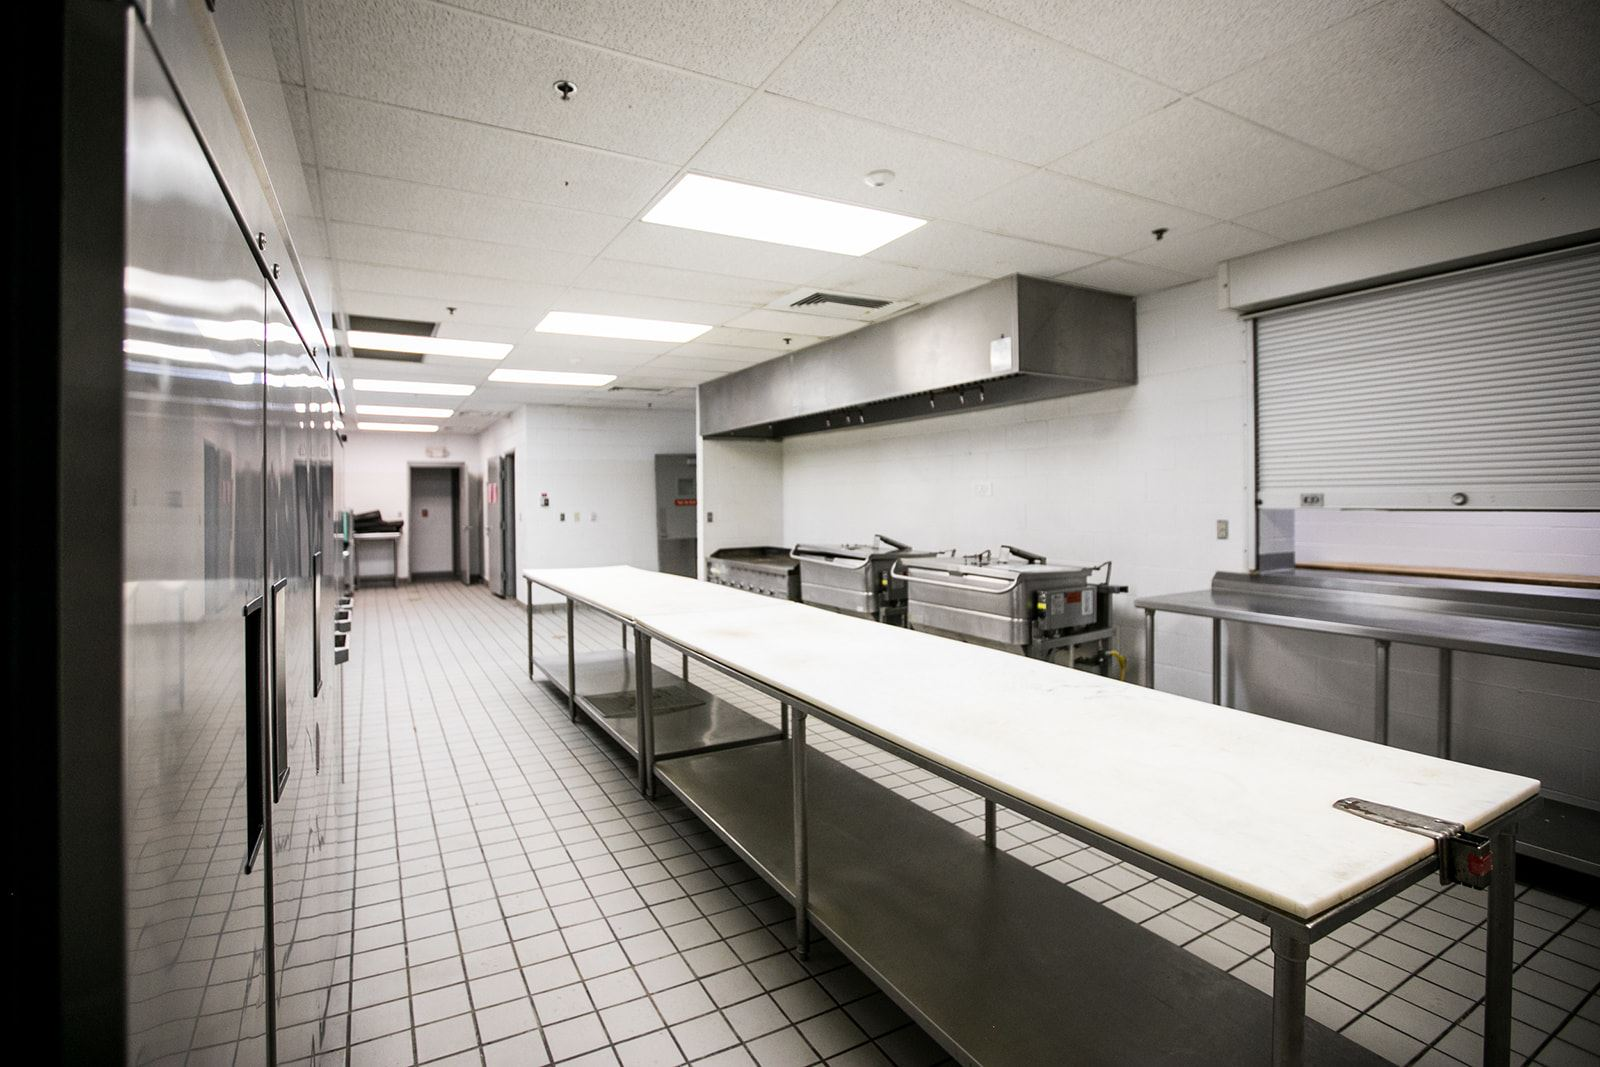 Conference Center Kitchen 2